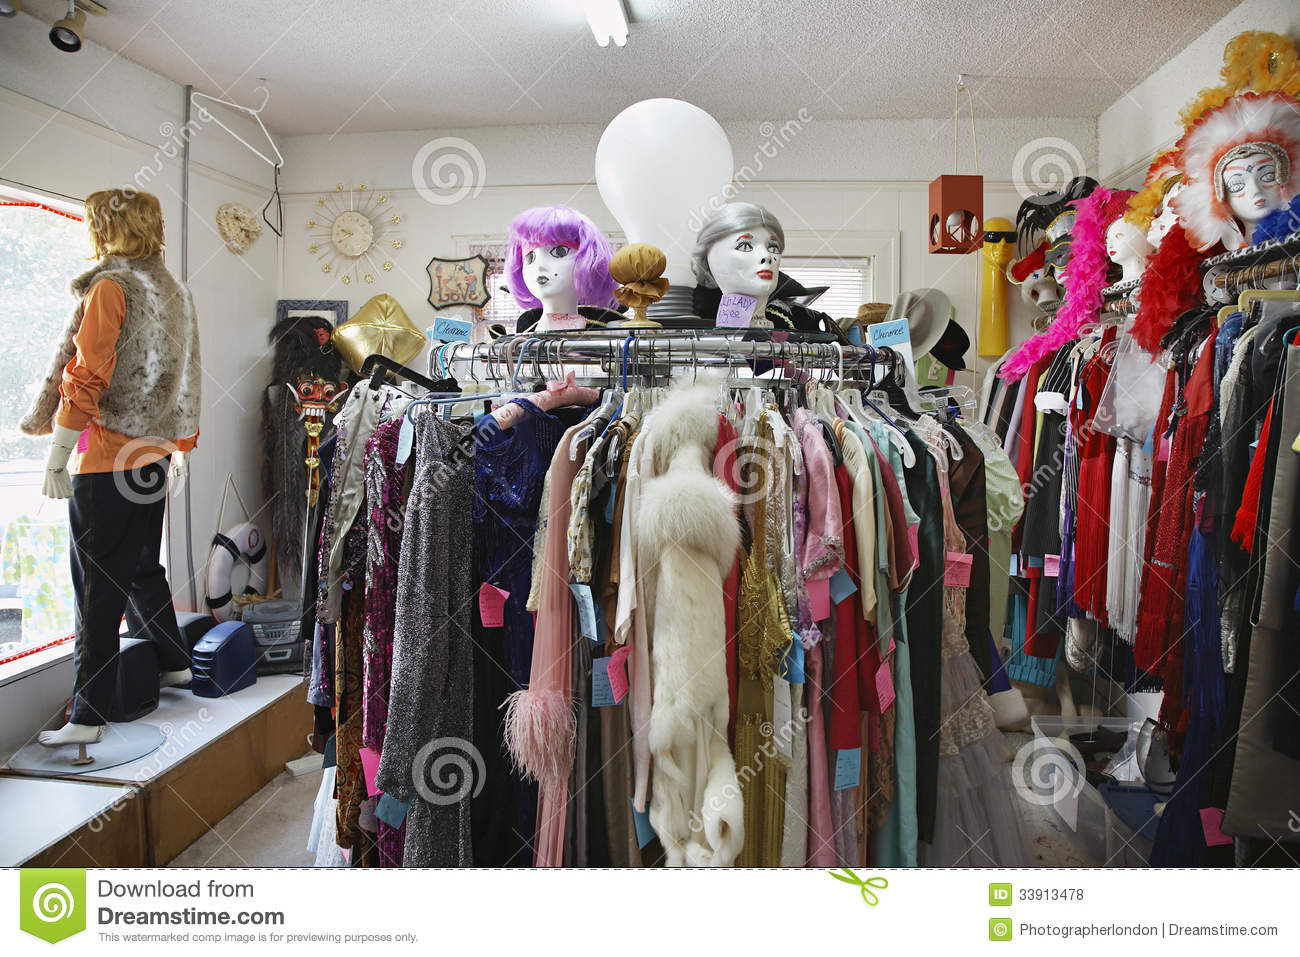 Clothing stores Stores buy used clothes